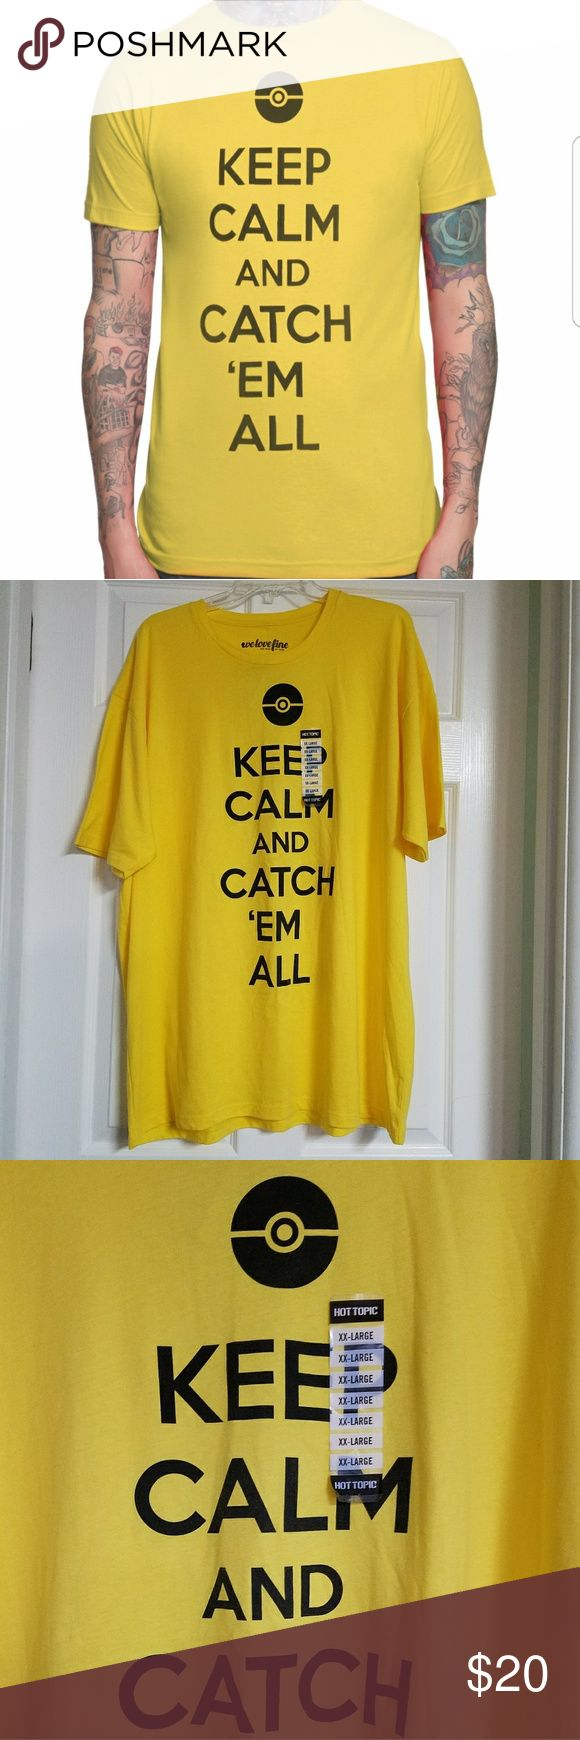 """POKEMON Keep Calm & Catch Em All Yellow shirt NWT Ip for sale is a brand new with tags Pokemon """"Keep Calm and Catch Em All"""" tee from Hot Topic. Pokemon Yellow Pilachu Version Vibes. 💛🖤💛🖤 When purchased, it came with a small pin size hole in the collar, as seen in pic 4. Back is plain yellow and colors are true to pics.  XXL/ 2X  Coming from a life long Pokemon fan, so I hope this can go to another who will LOVE IT!   *25 inches pit to pit x 31.5 inches long   Thanks for looking and…"""